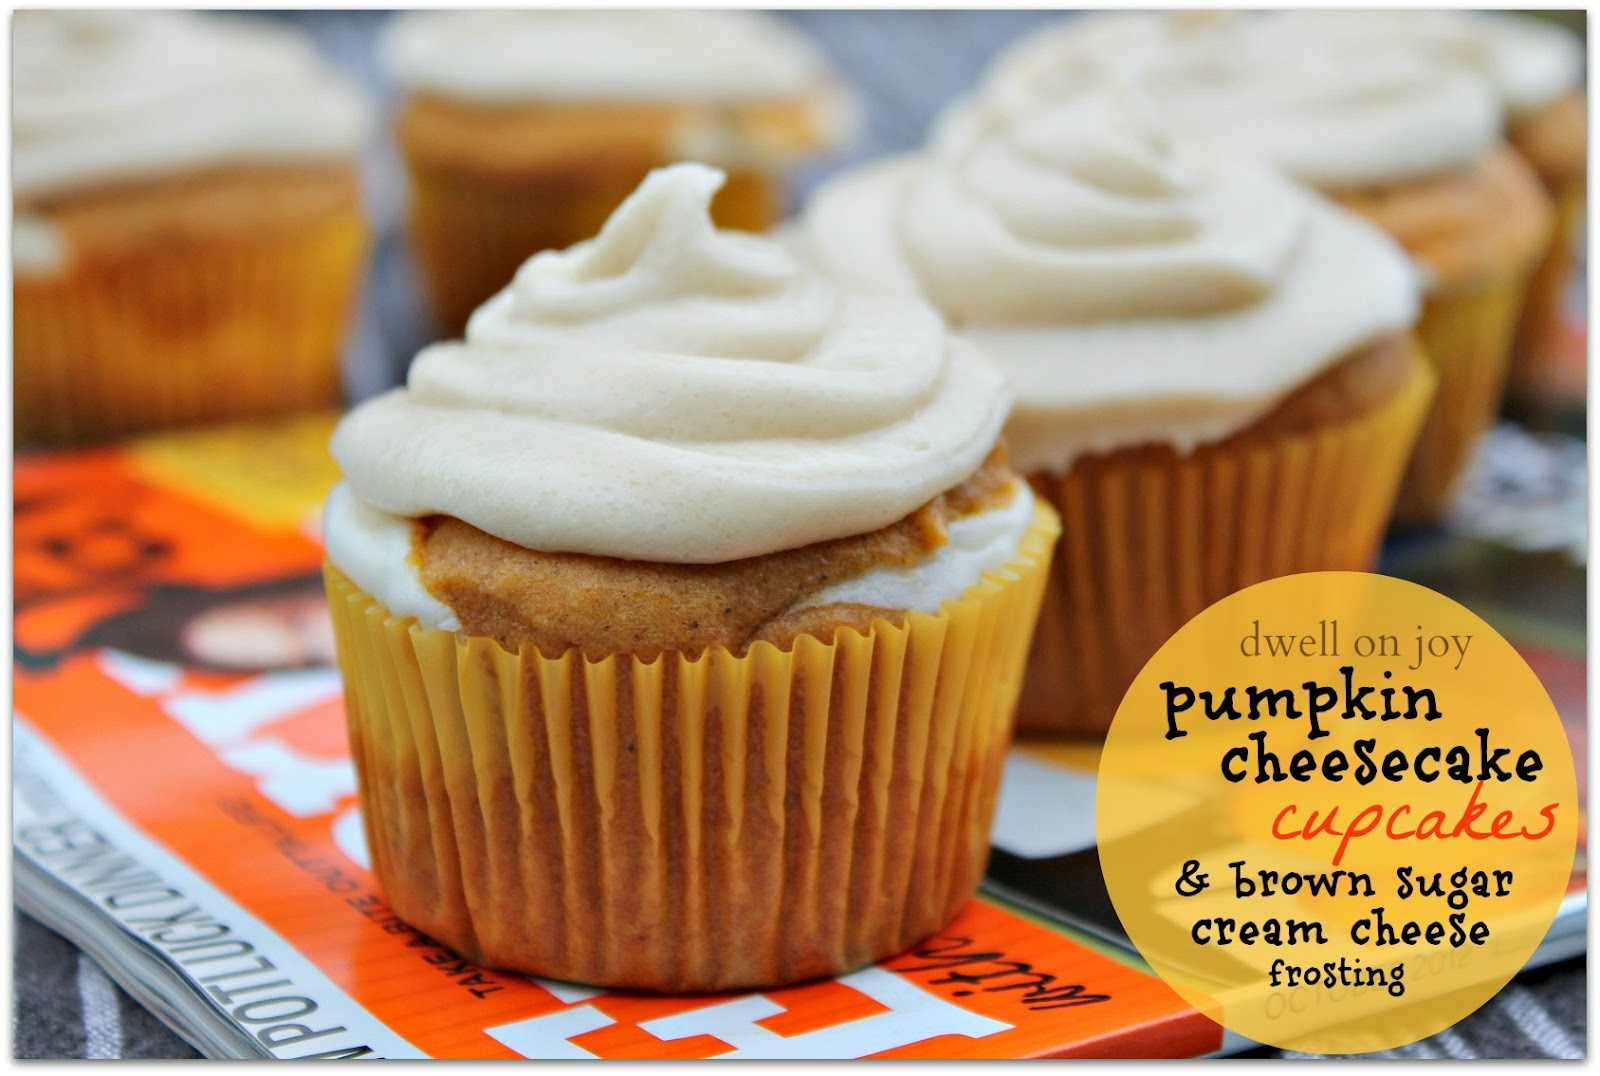 Dwell on Joy: Pumpkin Cheesecake Cupcakes for the Lonely Hearts Club